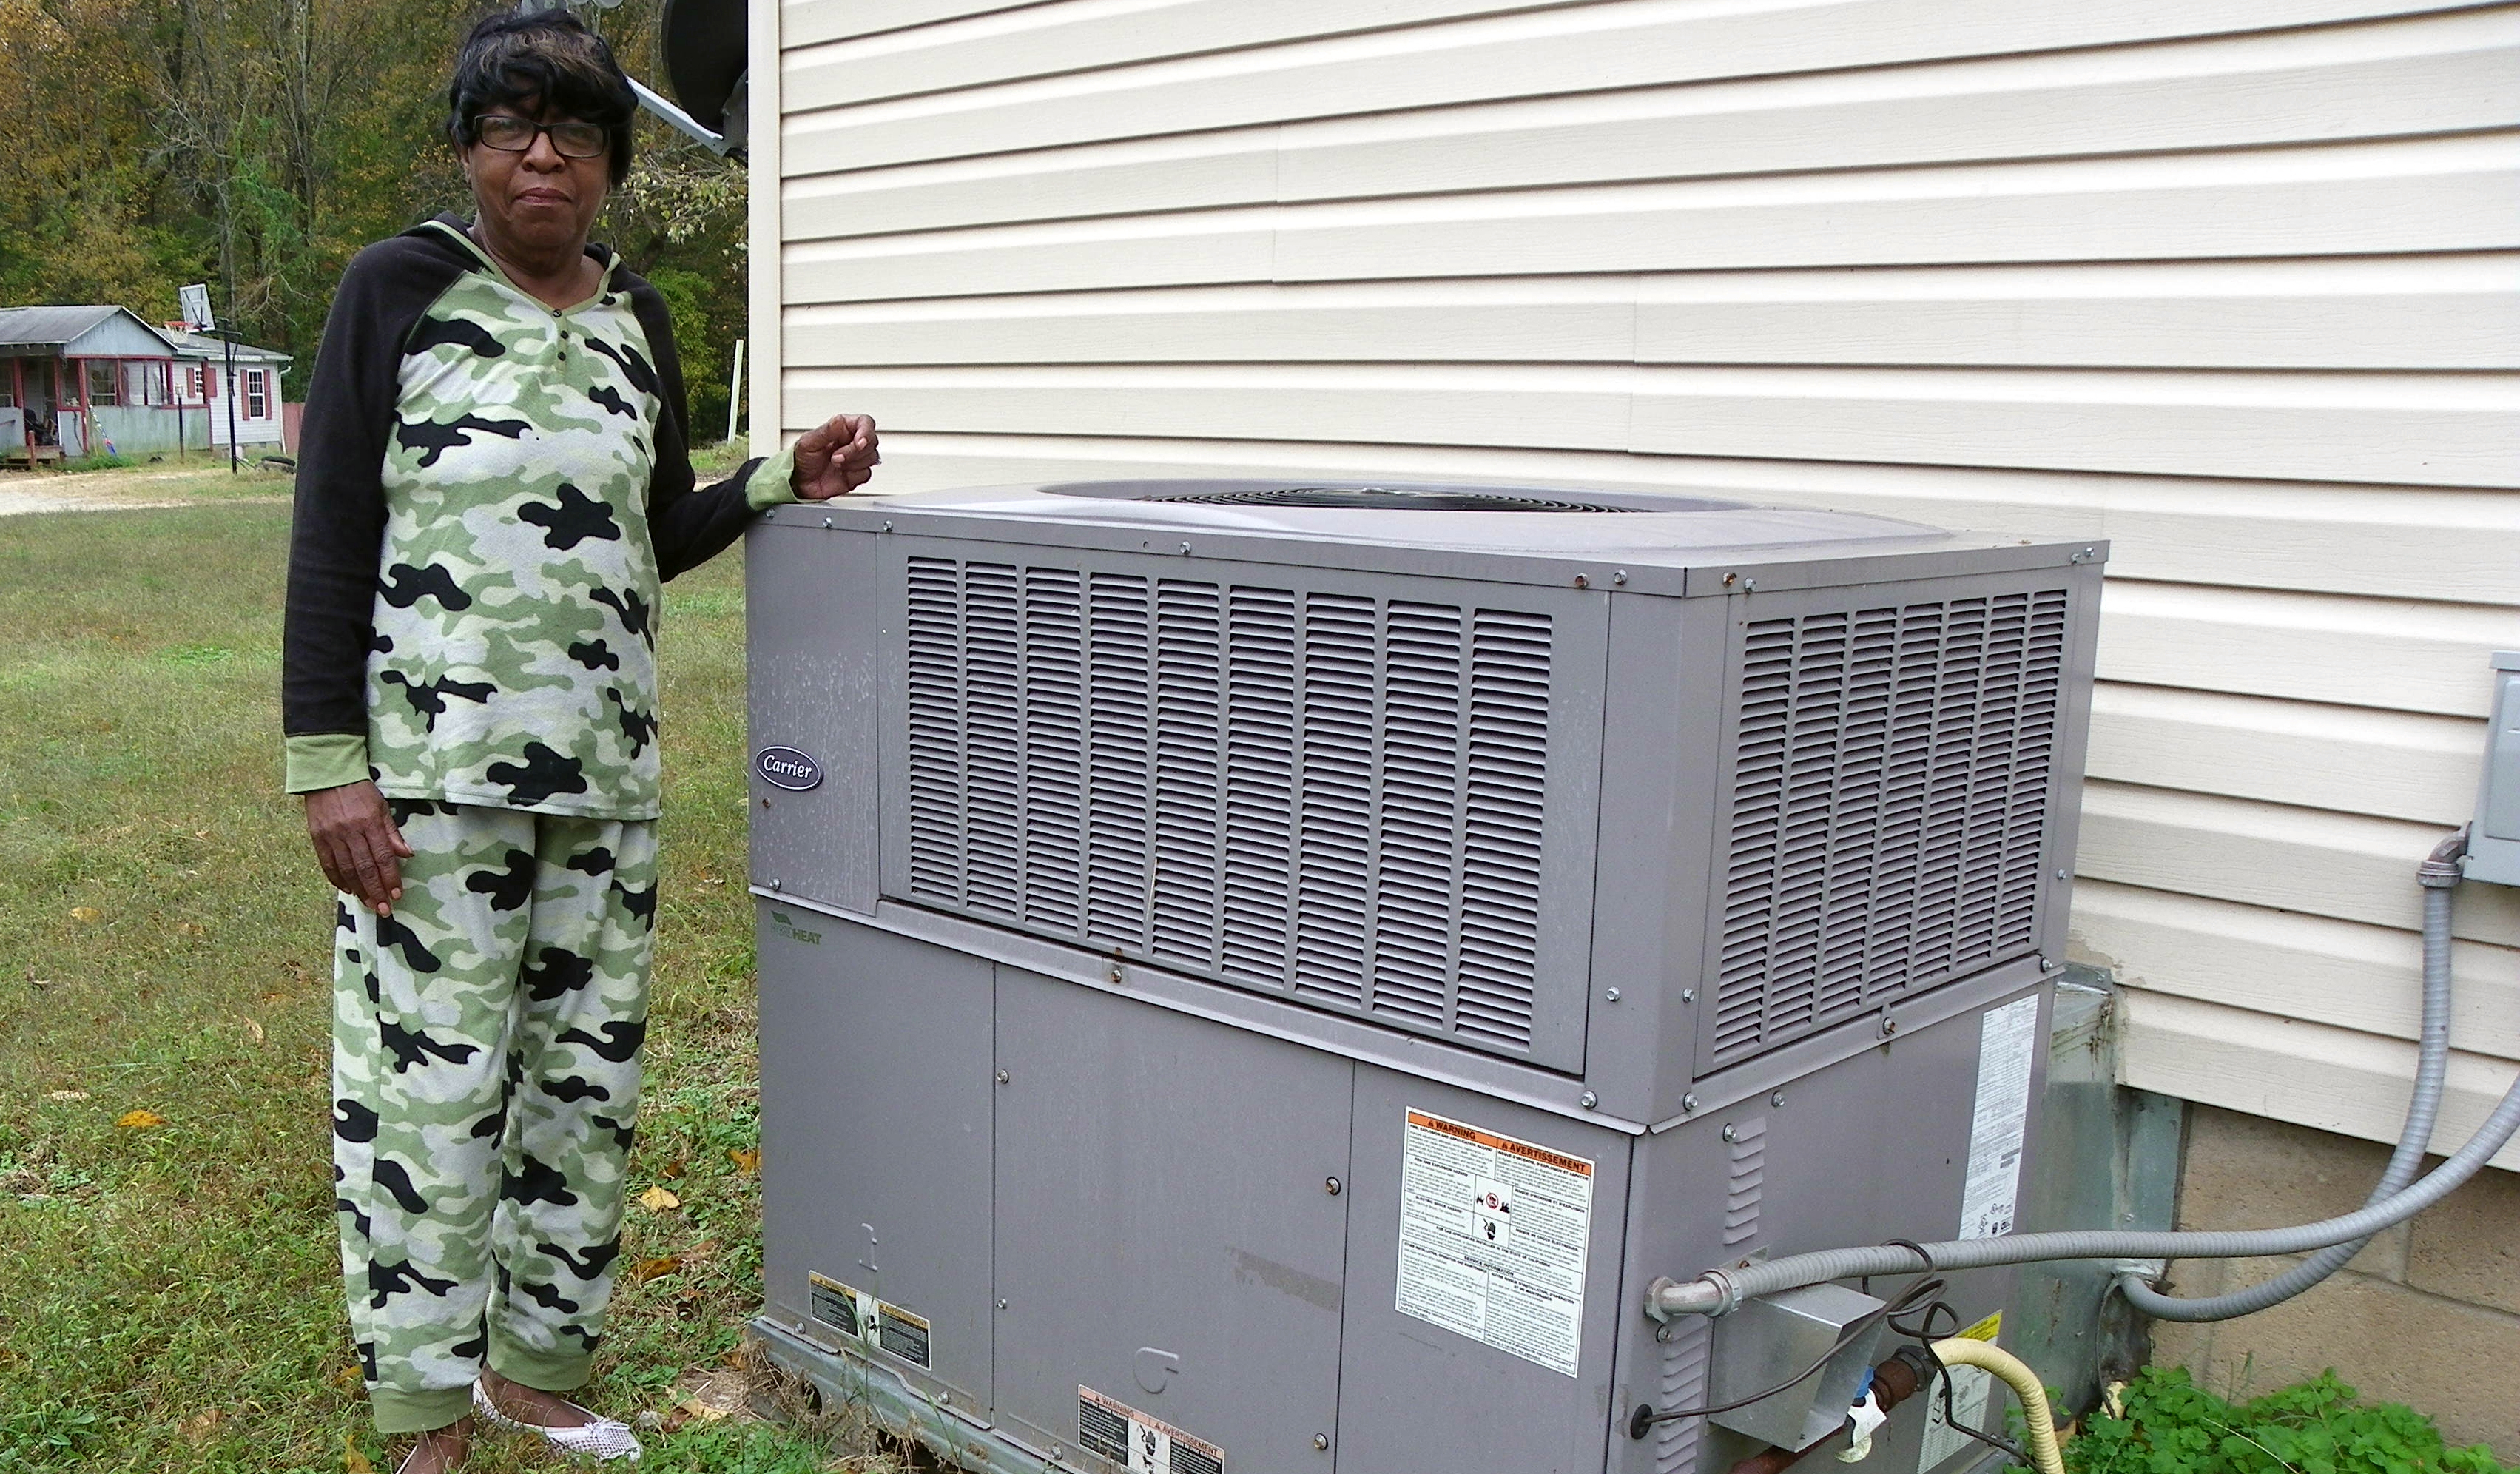 a woman stands with her hand on a new HVAC unit outside her home